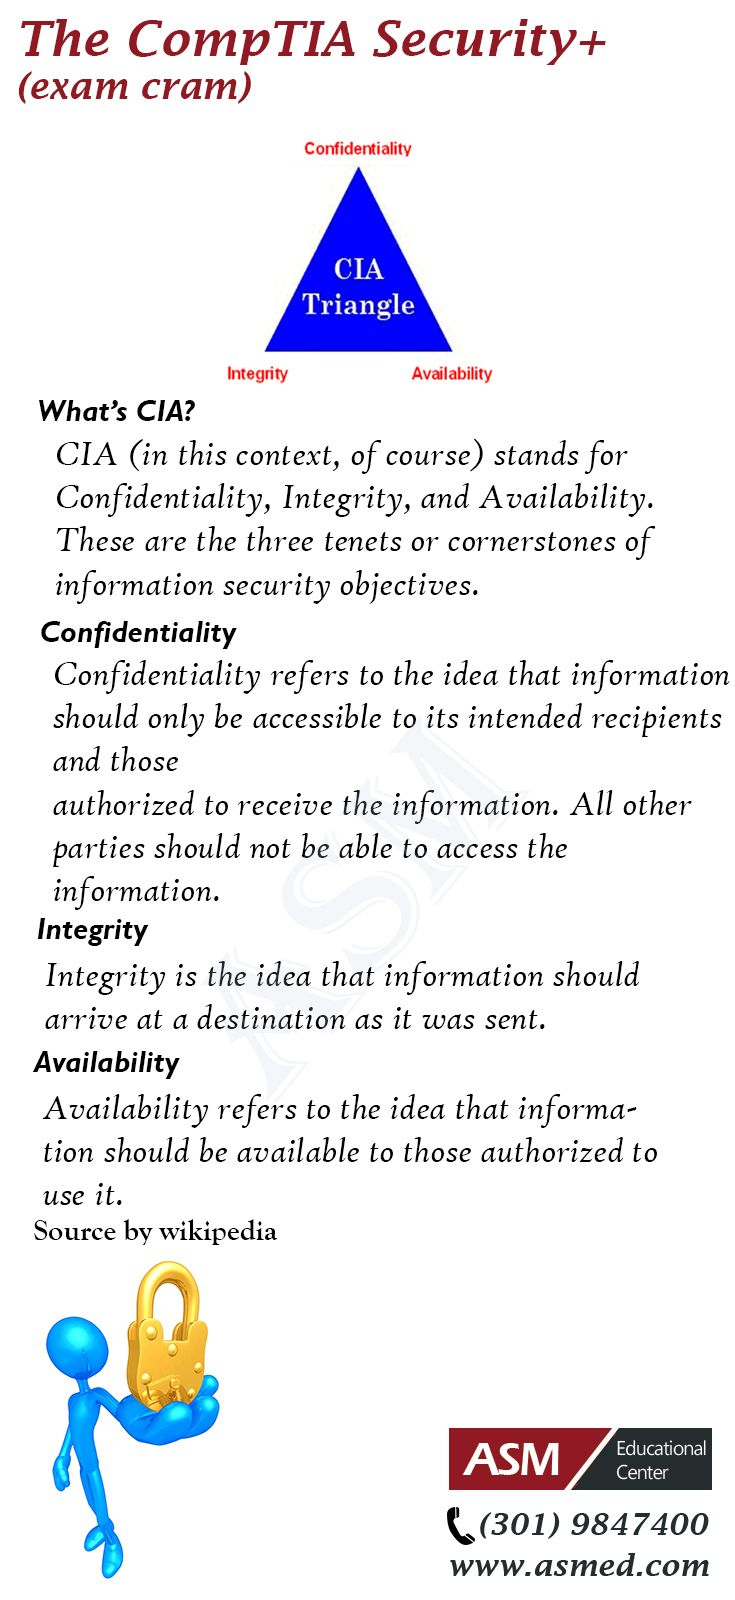 CompTIA Security+ - what's CIA? For more information to get certified for Microsoft MCSA, CompTIA A+, Network+, Security+ and Cisco CCNA, CCNP   Please Repin and go to : http://www.asmed.com/information-technology-it/